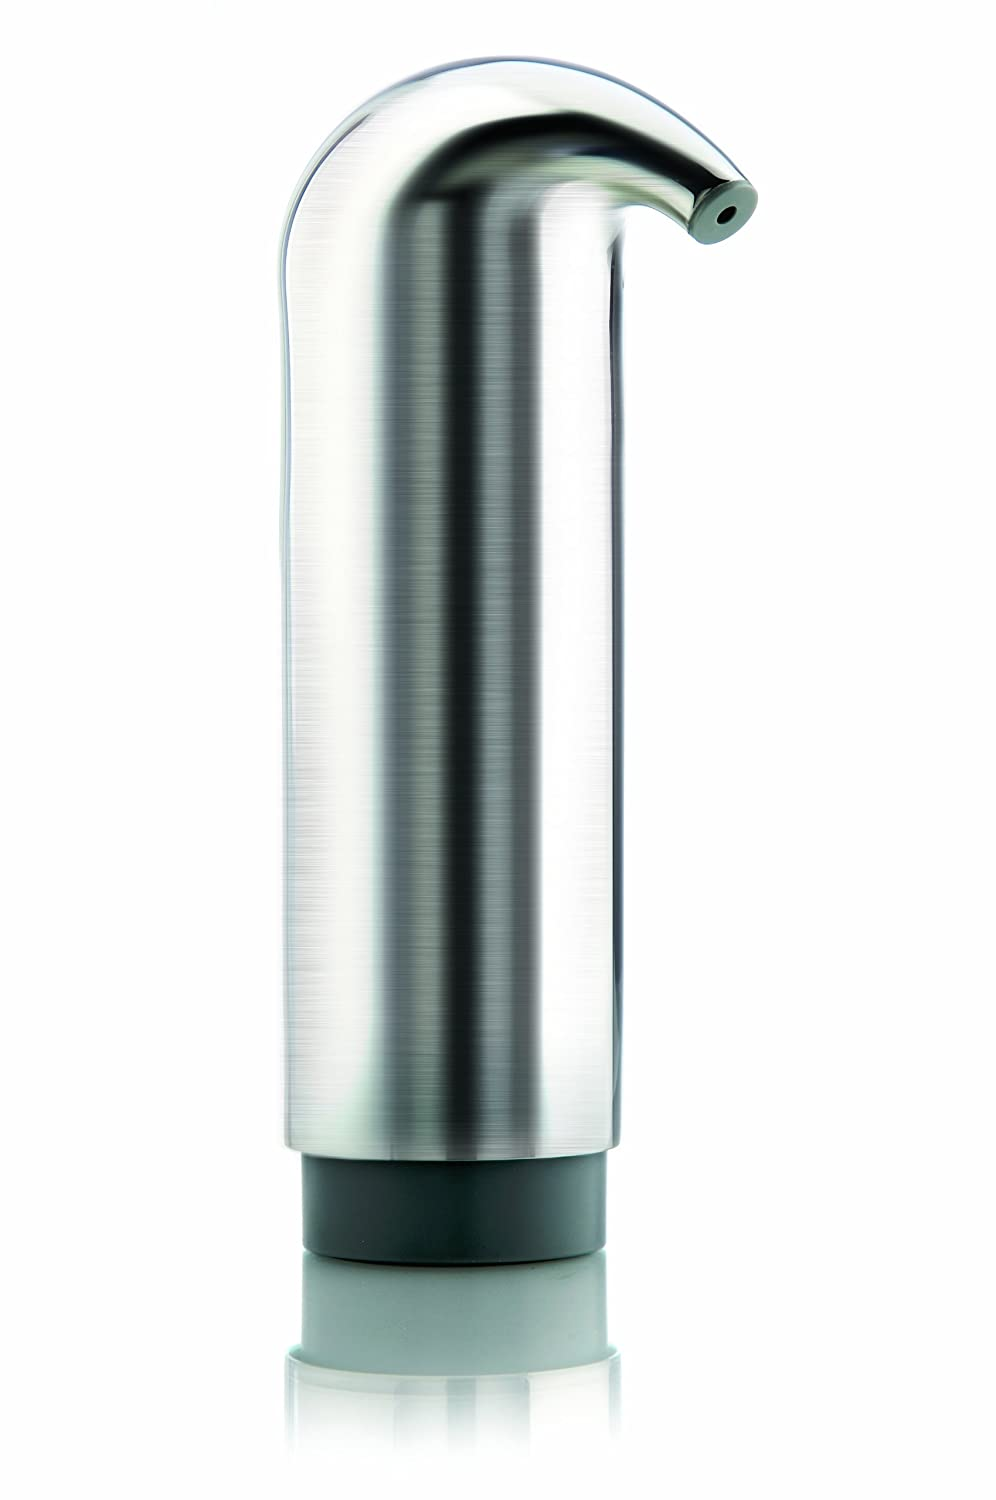 Amazon.com: Eva Solo Soap Dispenser, 7 by 22 cm, Brushed Stainless ...